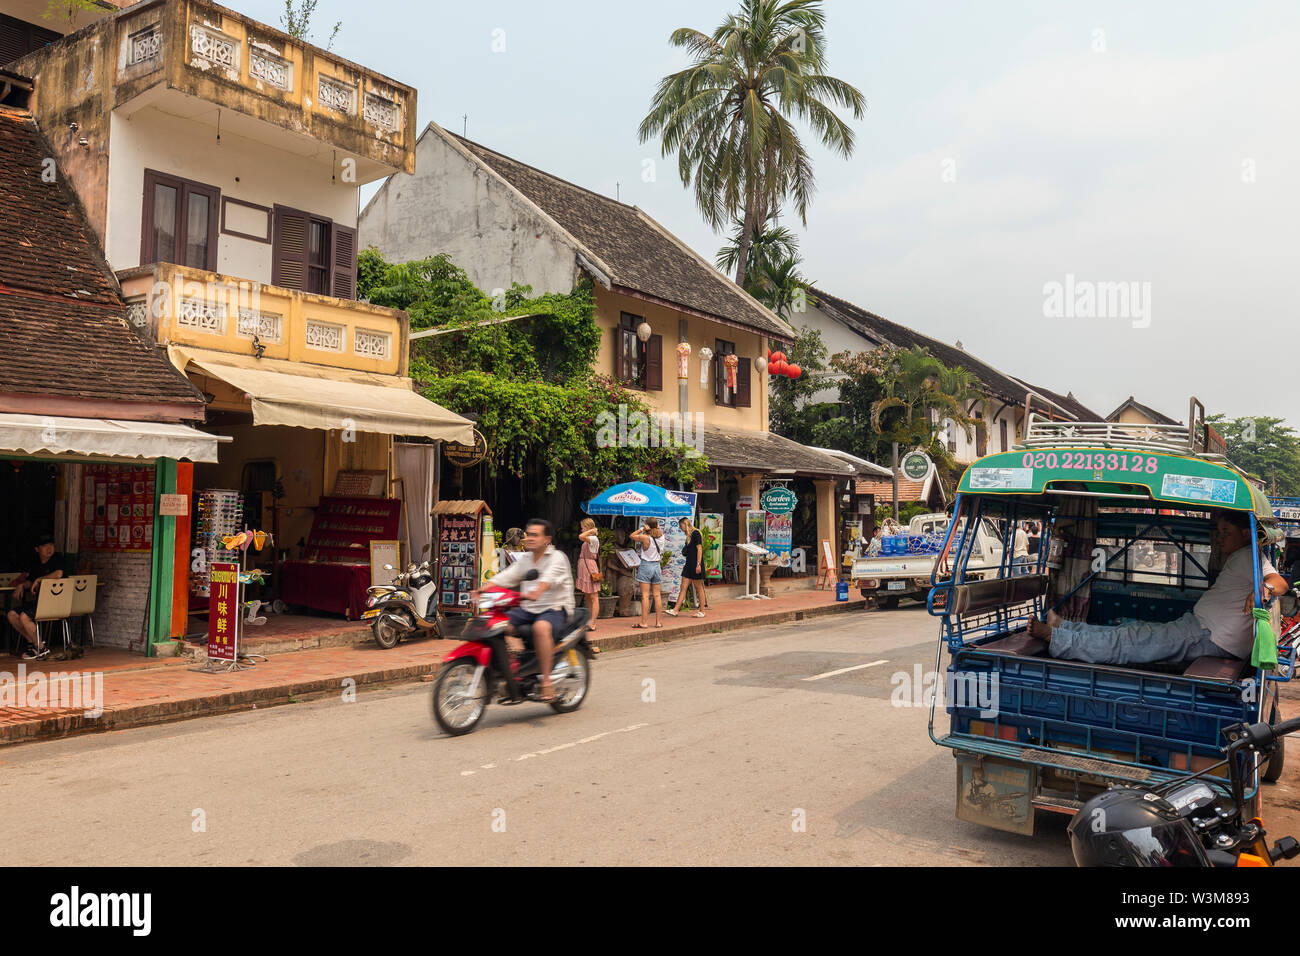 Few tourists and little traffic on the Sisavangvong Road in Luang Prabang, Laos, on a sunny day. Stock Photo